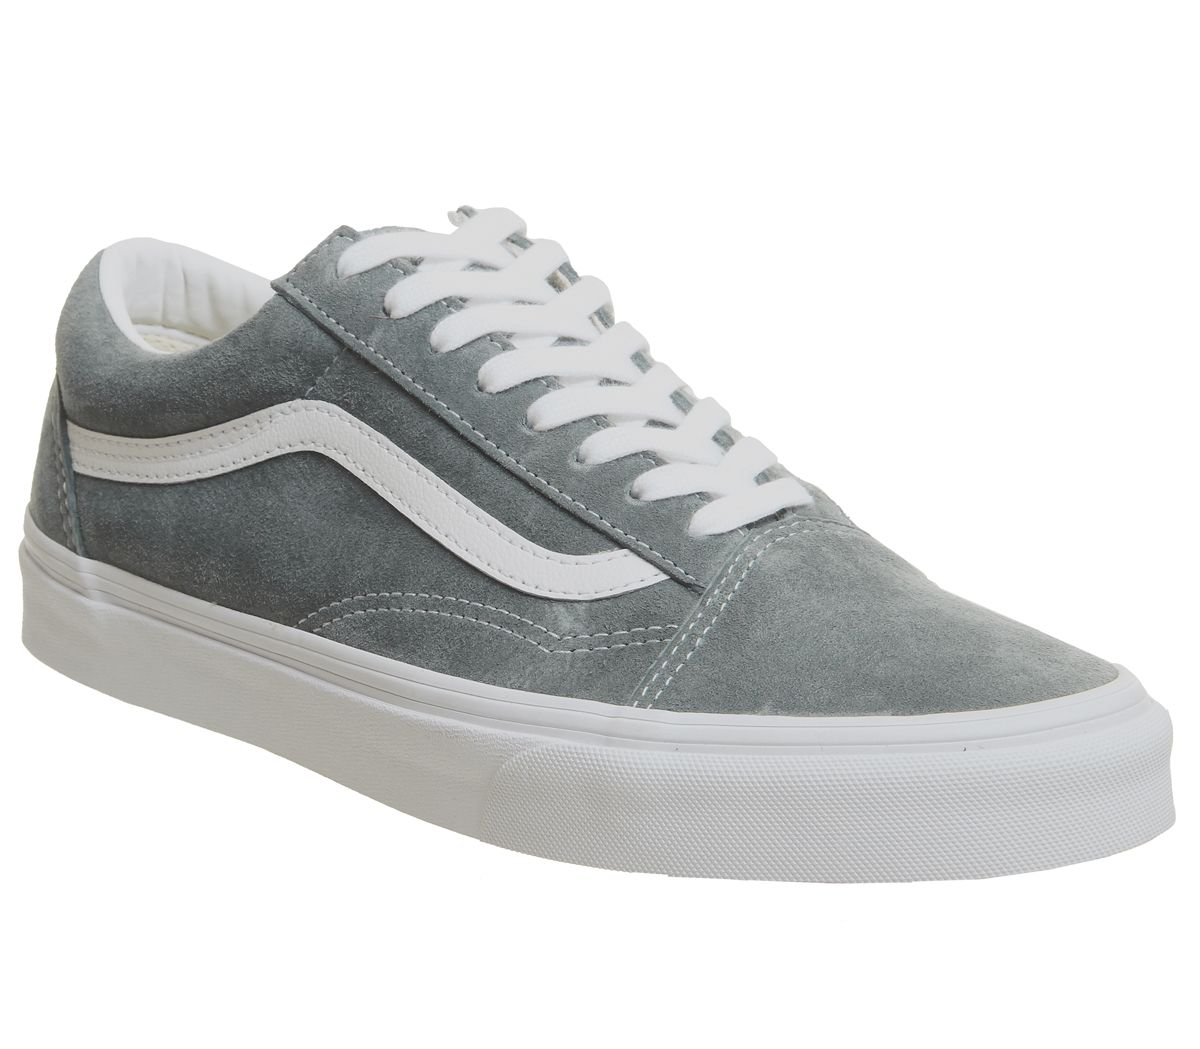 580329ca5fdf3 Vans Old Skool Trainers Stormy Weather True White - Hers trainers